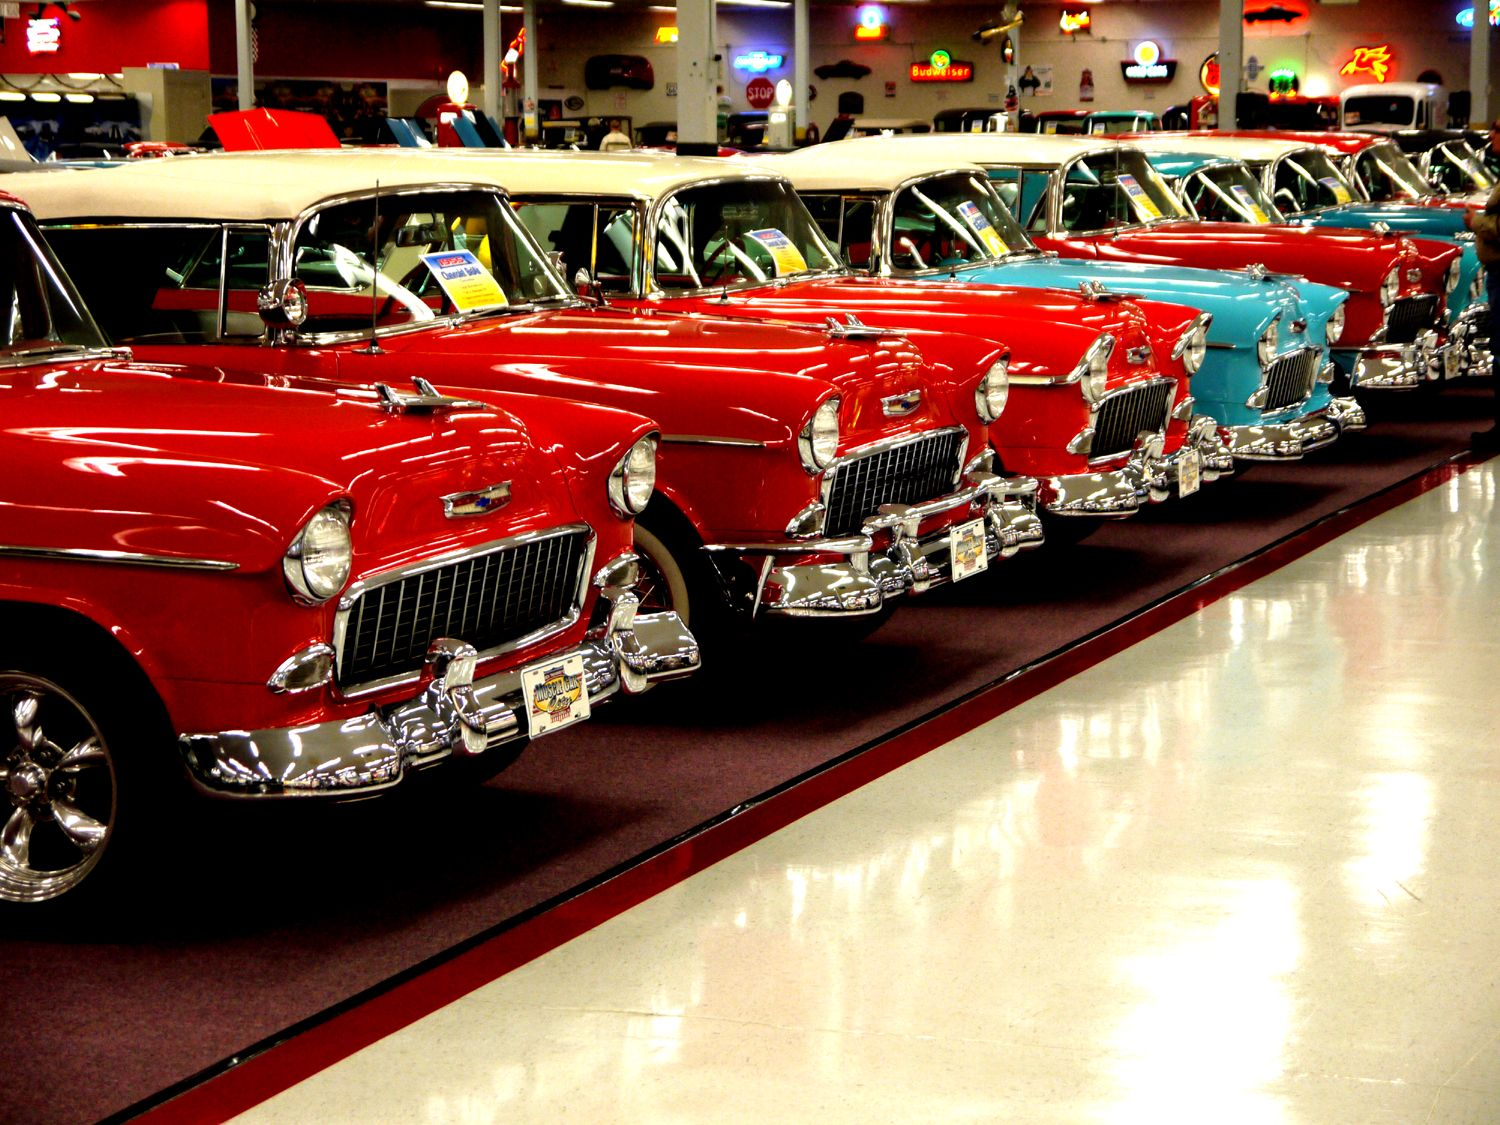 Collection of Chevrolet Bel Airs at Muscle Car City car